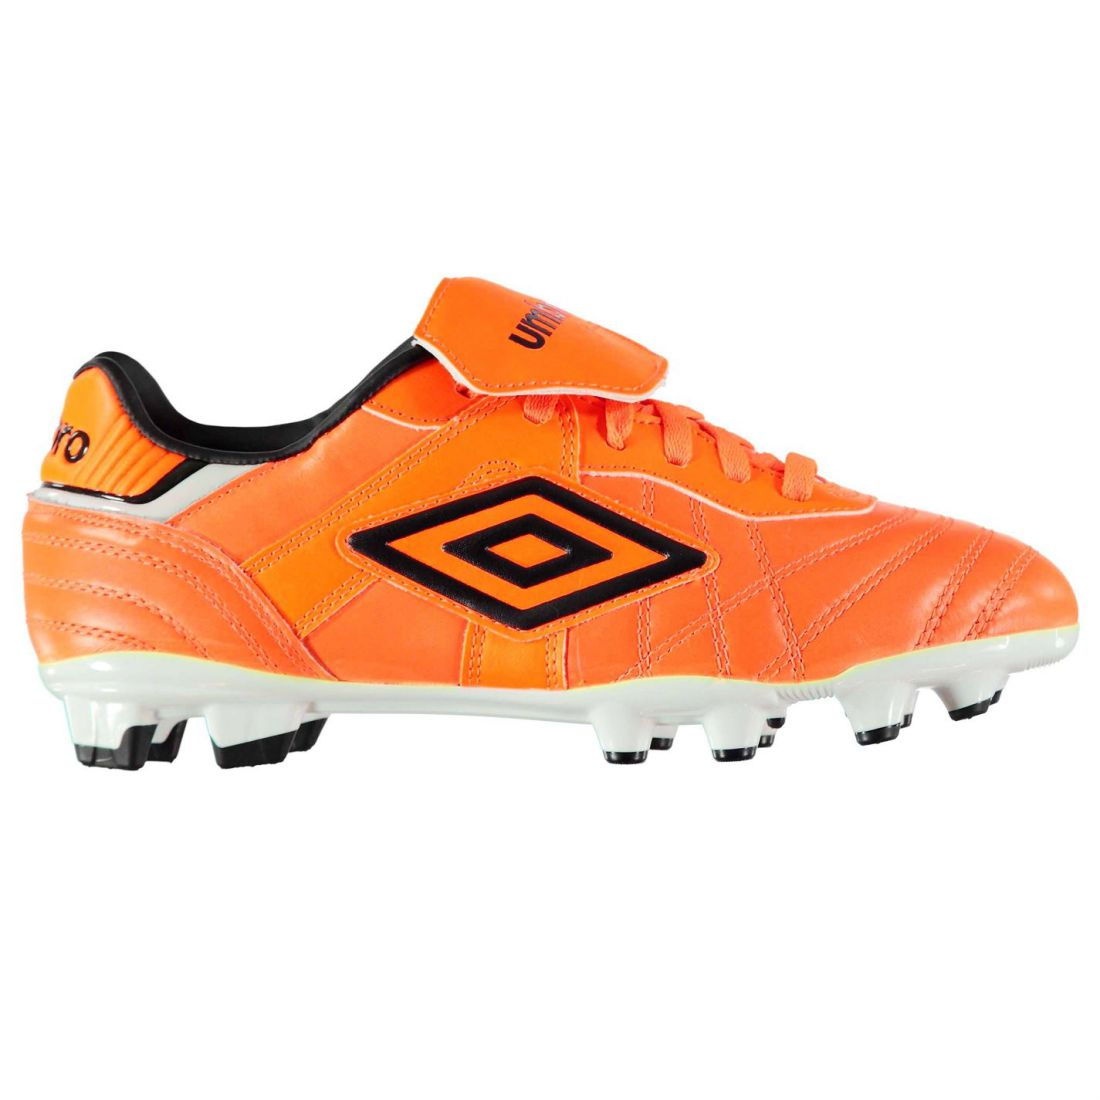 Image is loading Umbro-Speciali-Eternal-Premier-HG-Football-Boots-Mens- 78fce674b507a